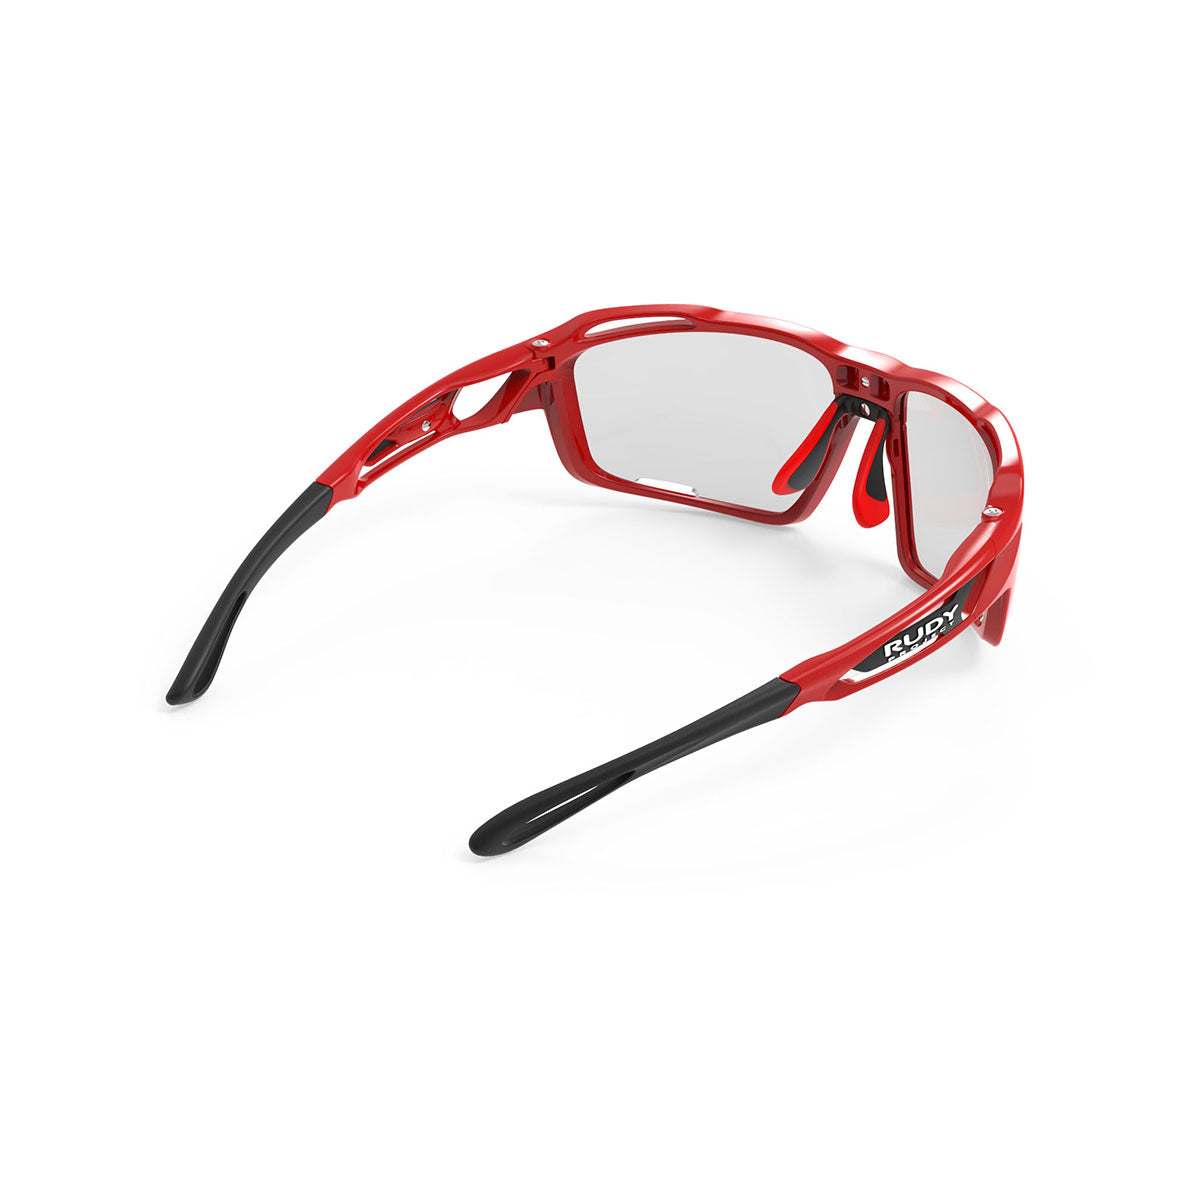 Rudy Project - Sintryx - frame color: Fire Red Gloss - lens color: ImpactX-2 Photochromic Clear to Black - Bumper Color:  - photo angle: Top Back Angle Variant Hover Image